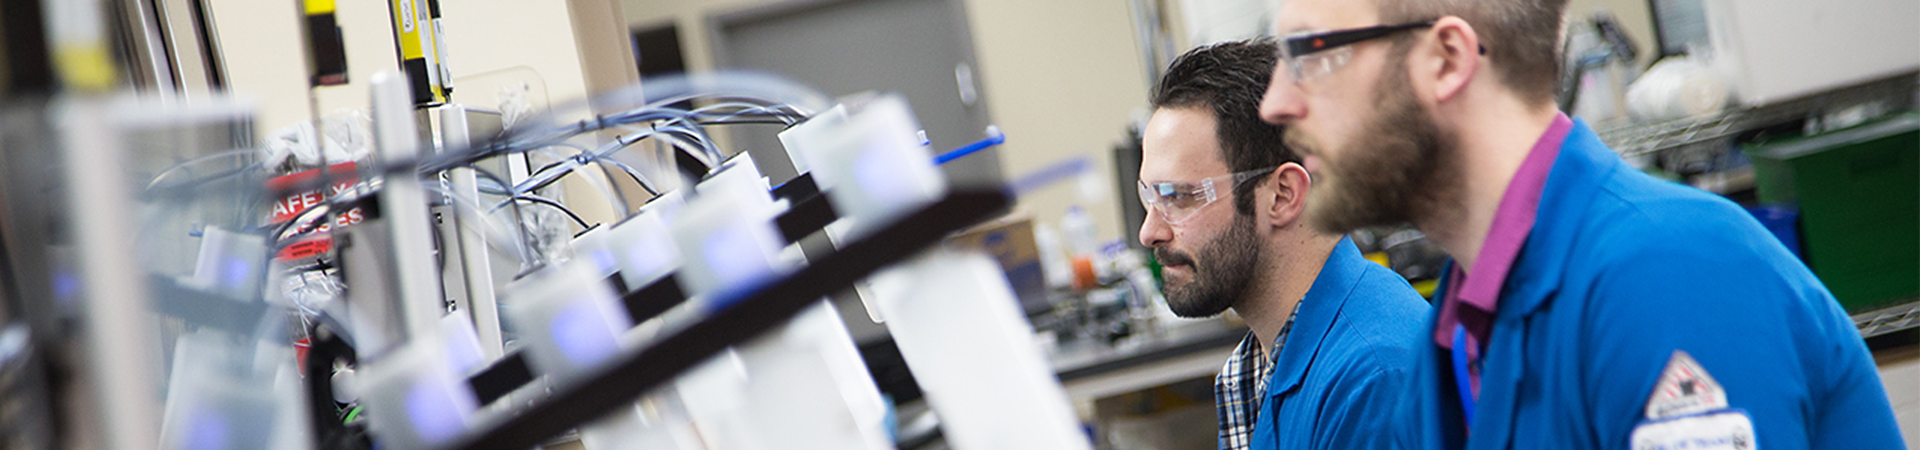 Find a Career at Integrated DNA Technology